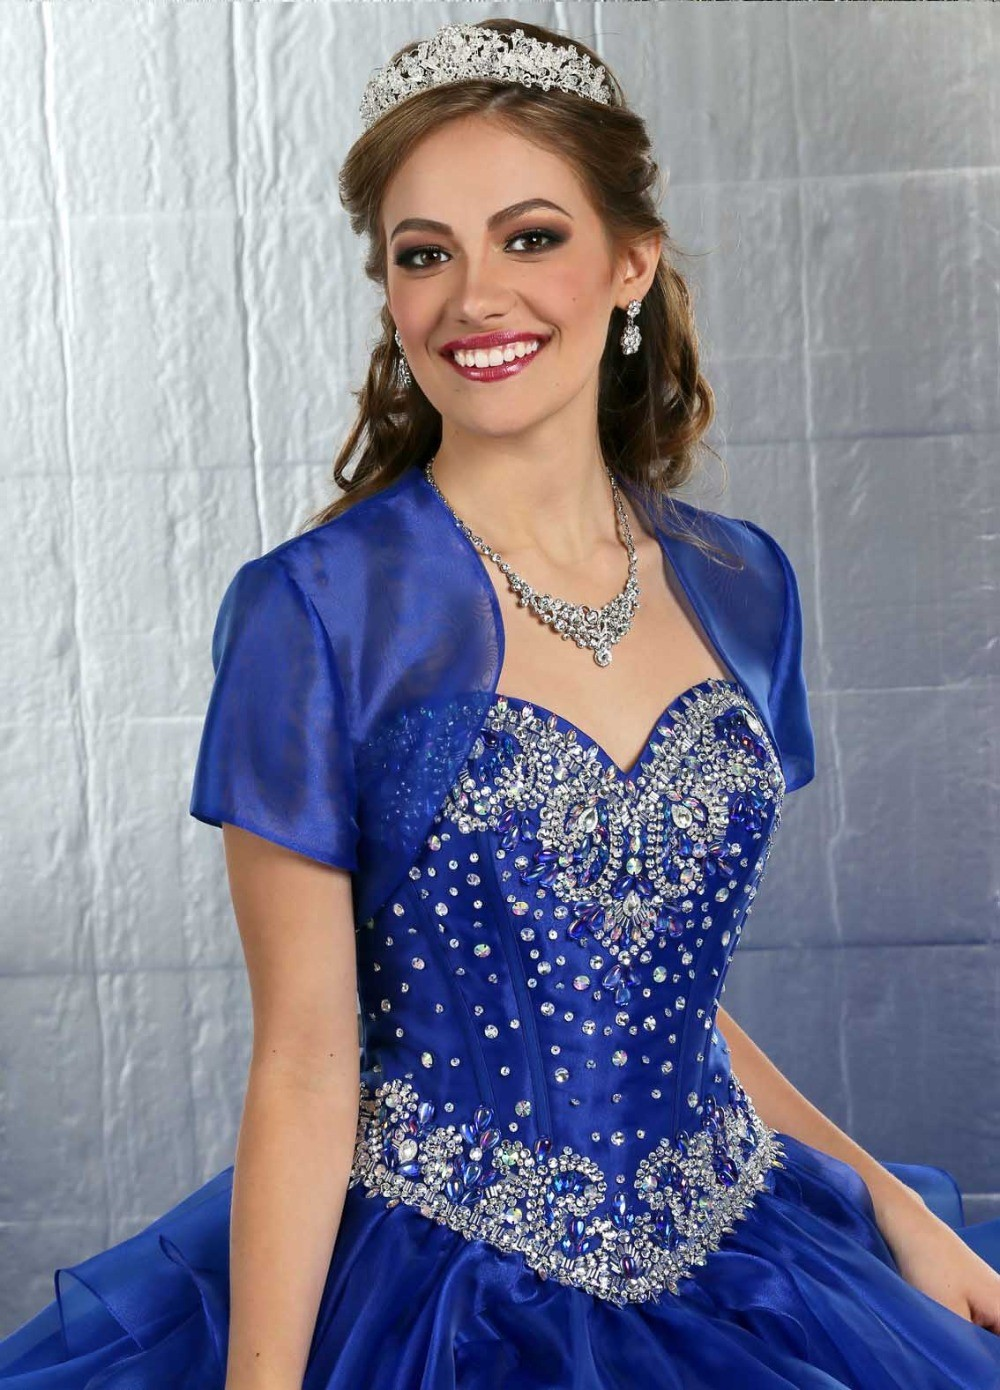 Sweet-16-Dresses-Cheap-Masquerade-Ball-Gowns-Beaded-Bodice-Ruffles-Sparkly-Crystals-Puffy-Royal-Blue-Quinceanera (3)